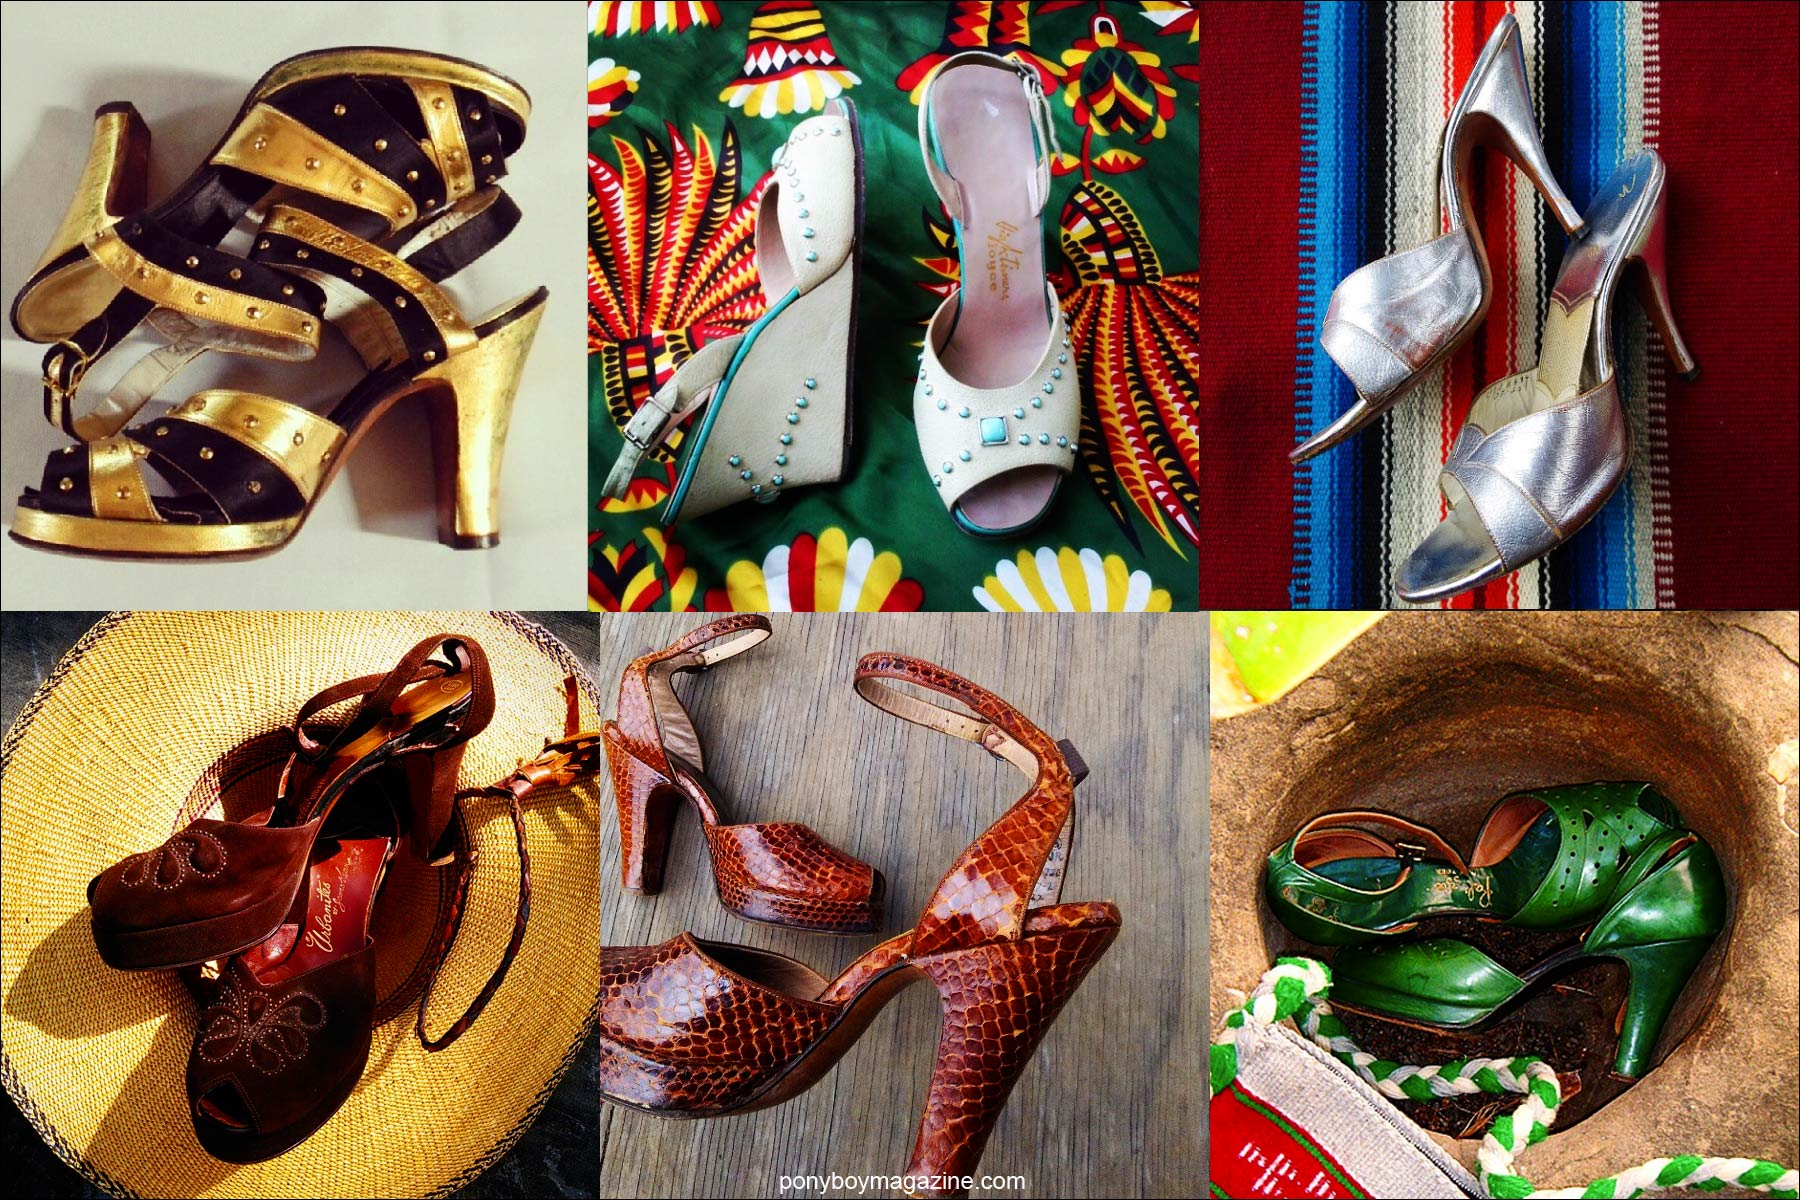 Vintage women's shoes from the 1930's-50's, from the collection of Santa Muerte Trading Co. Ponyboy magazine NYC.